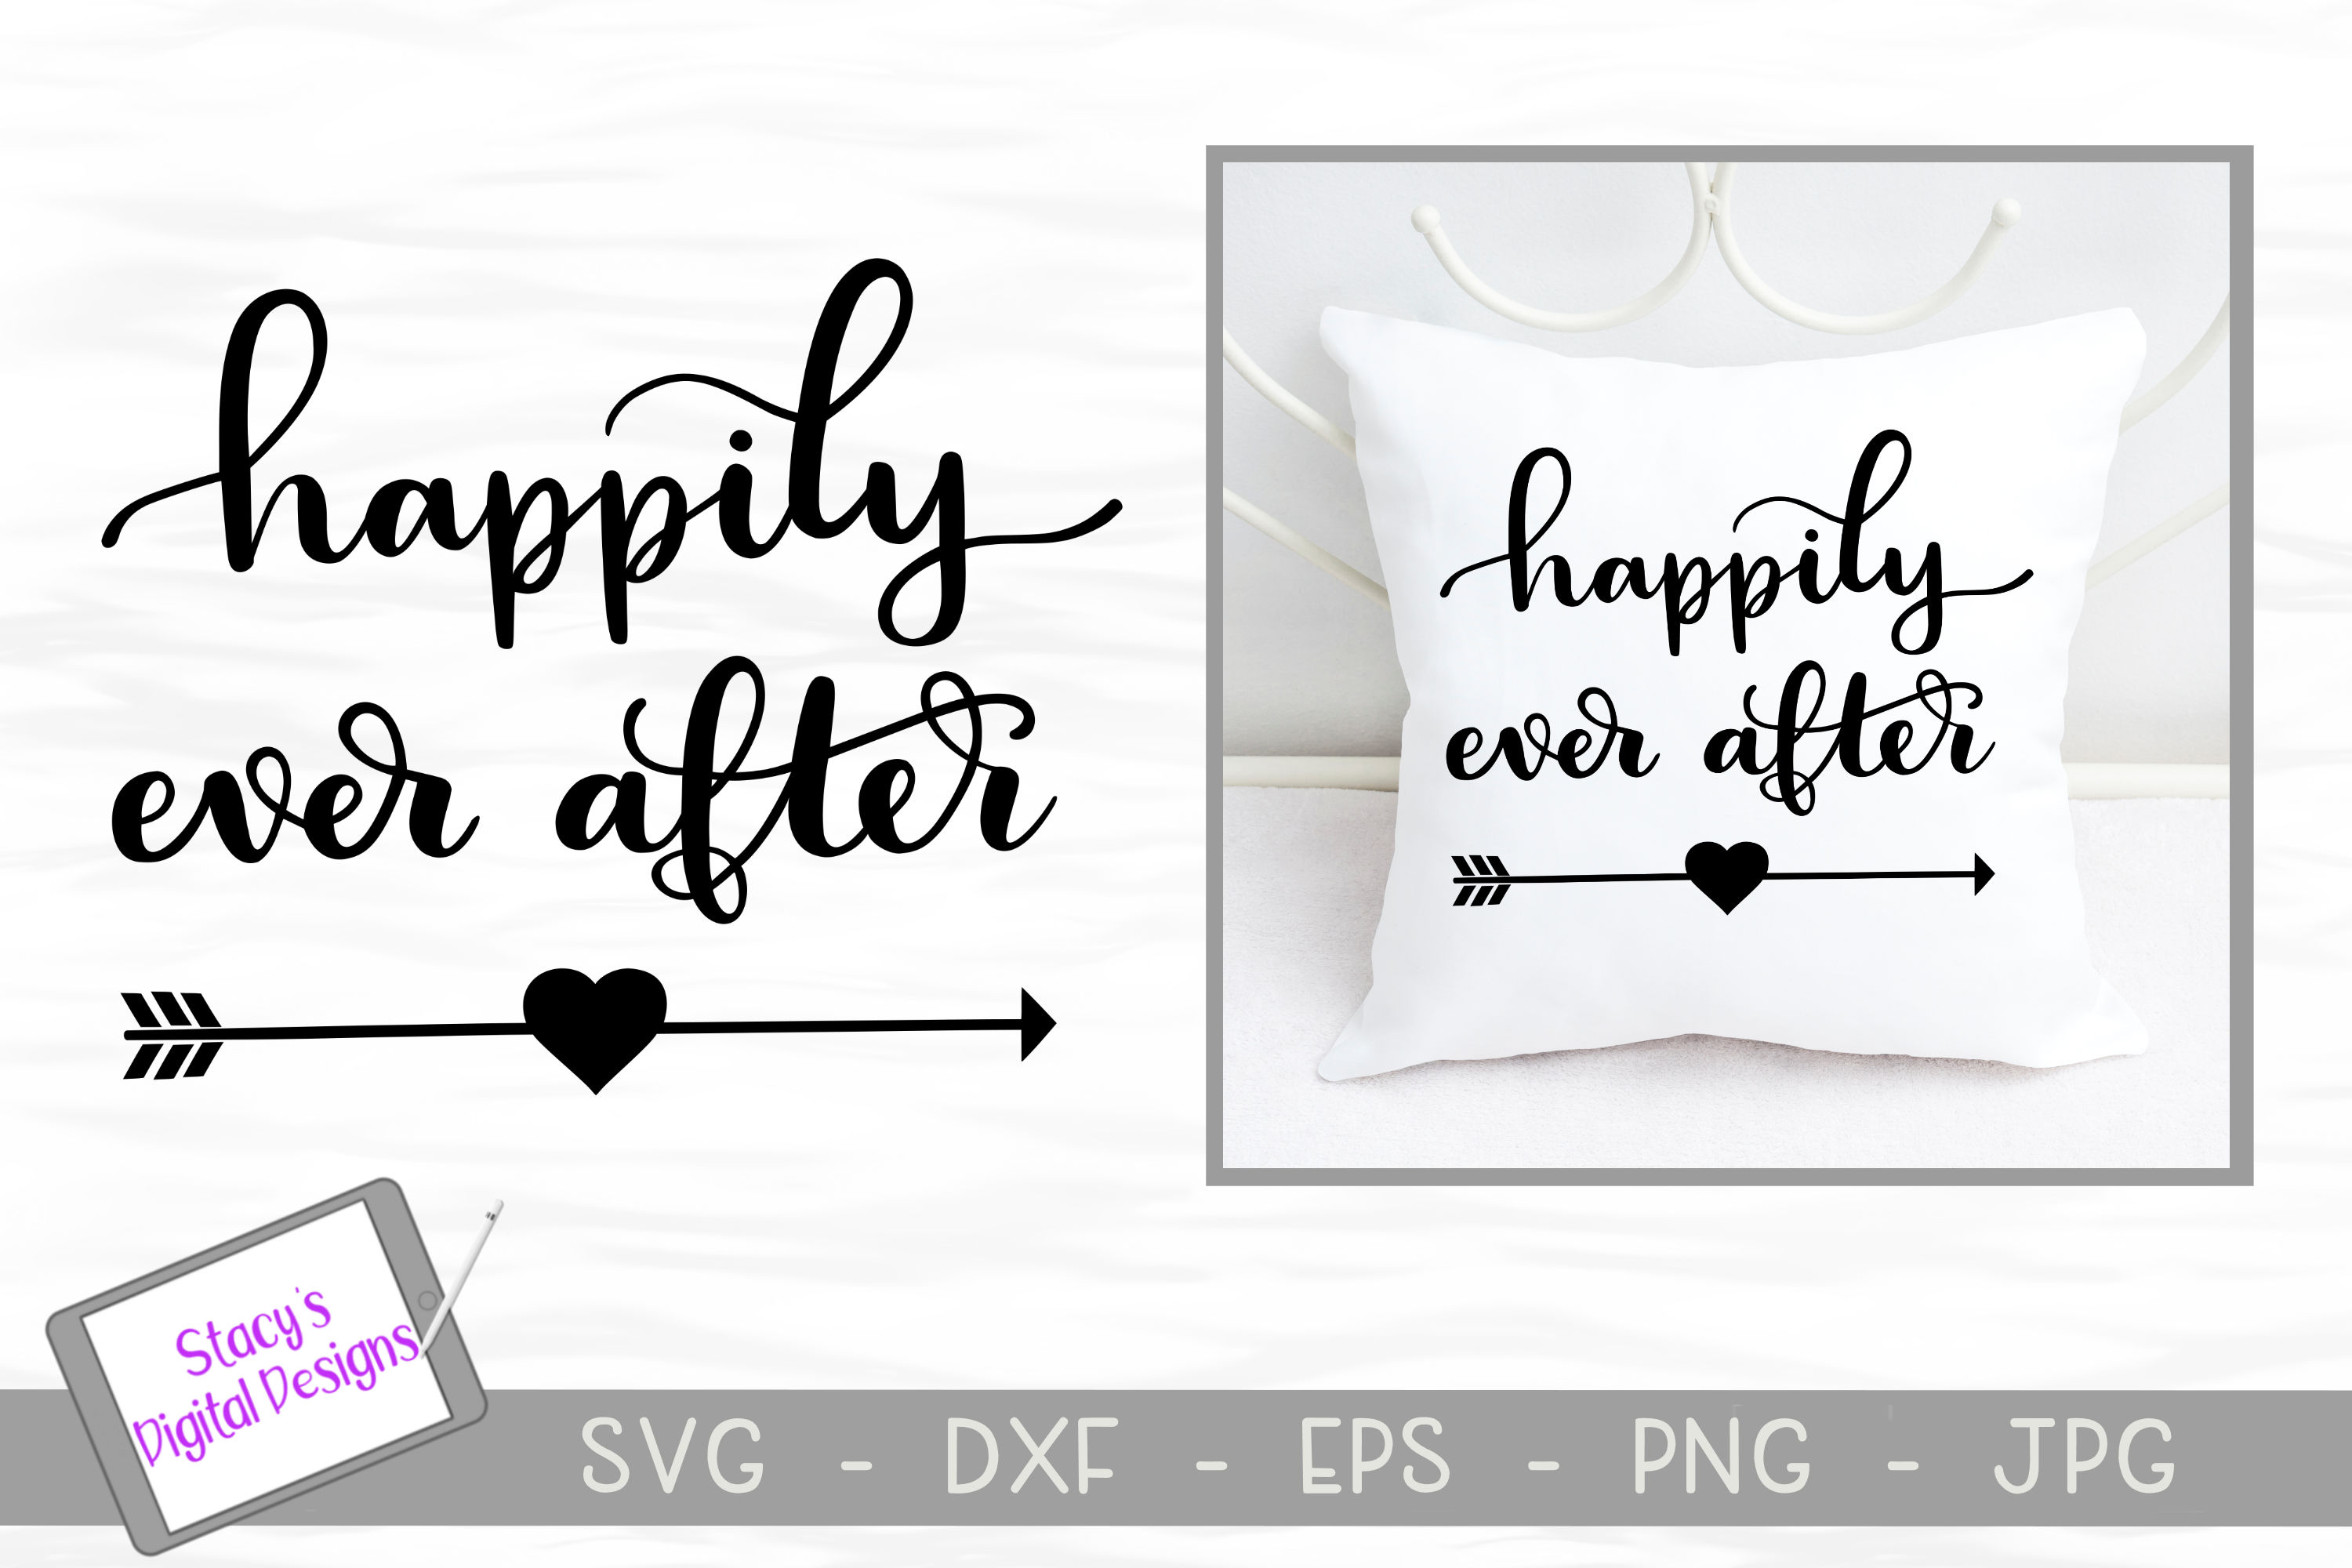 Download Free Happily Ever After Wedding Graphic By Stacysdigitaldesigns for Cricut Explore, Silhouette and other cutting machines.